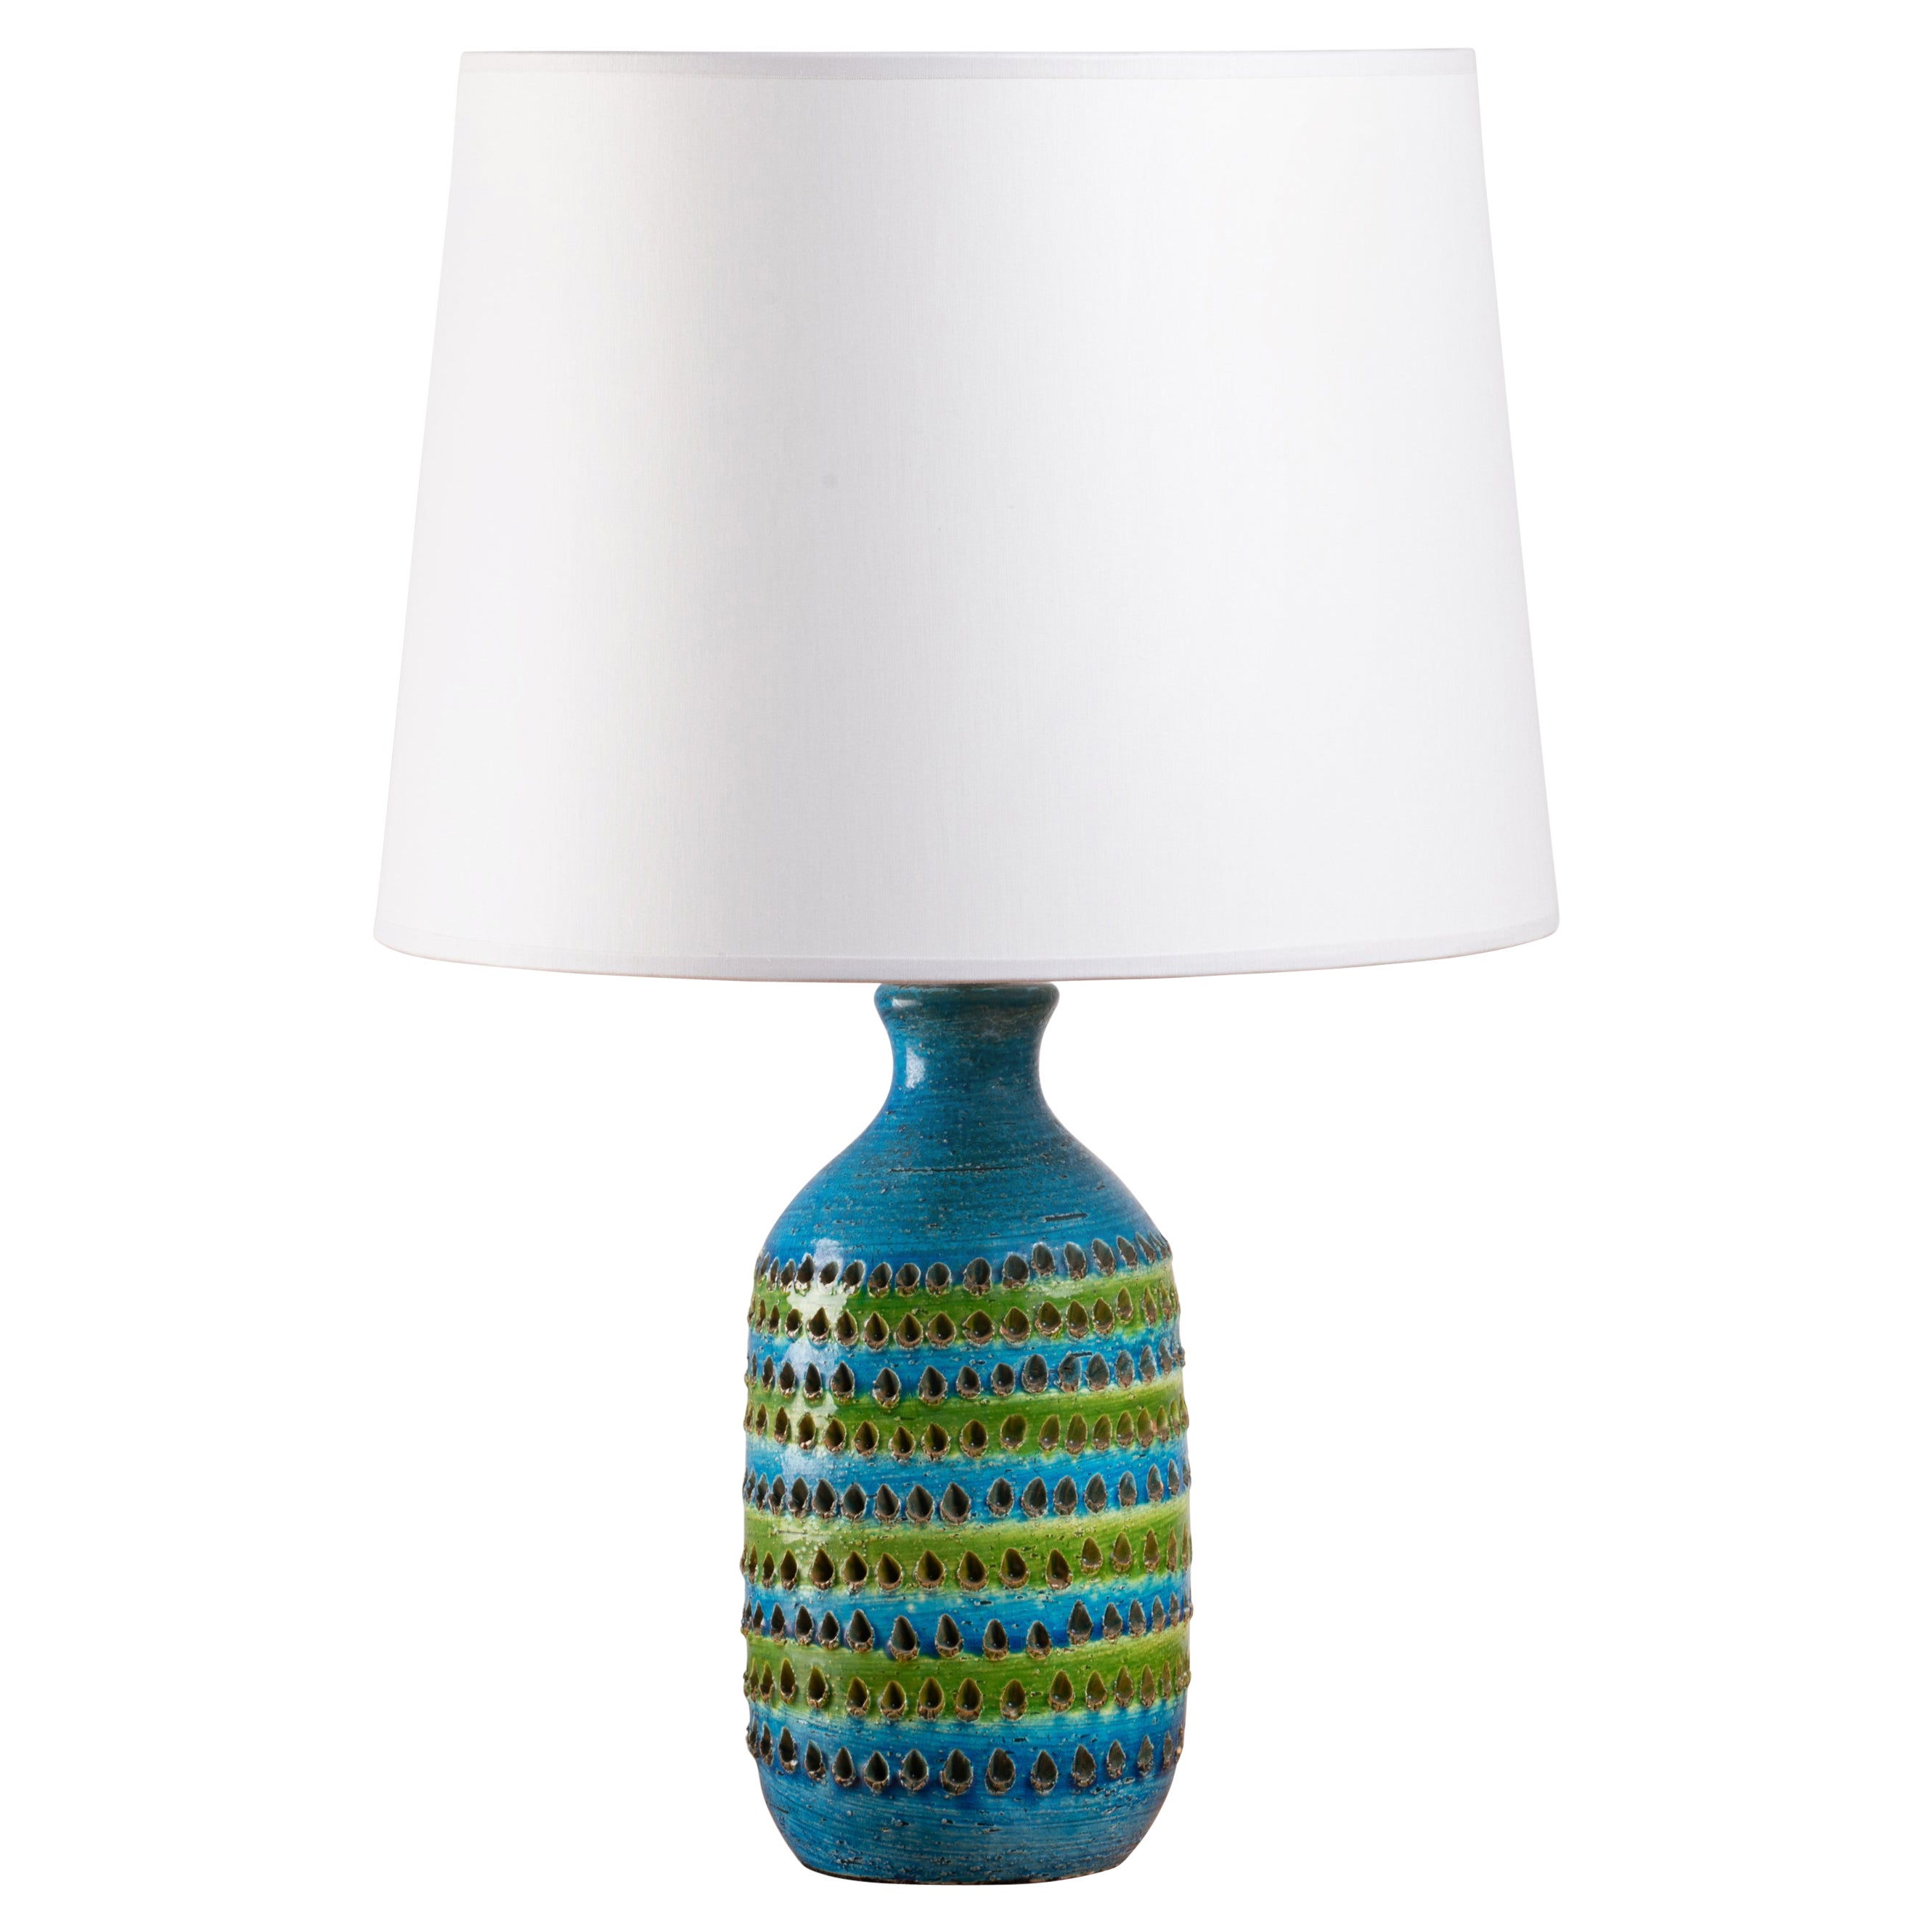 Ceramic Table Lamp by Bitossi